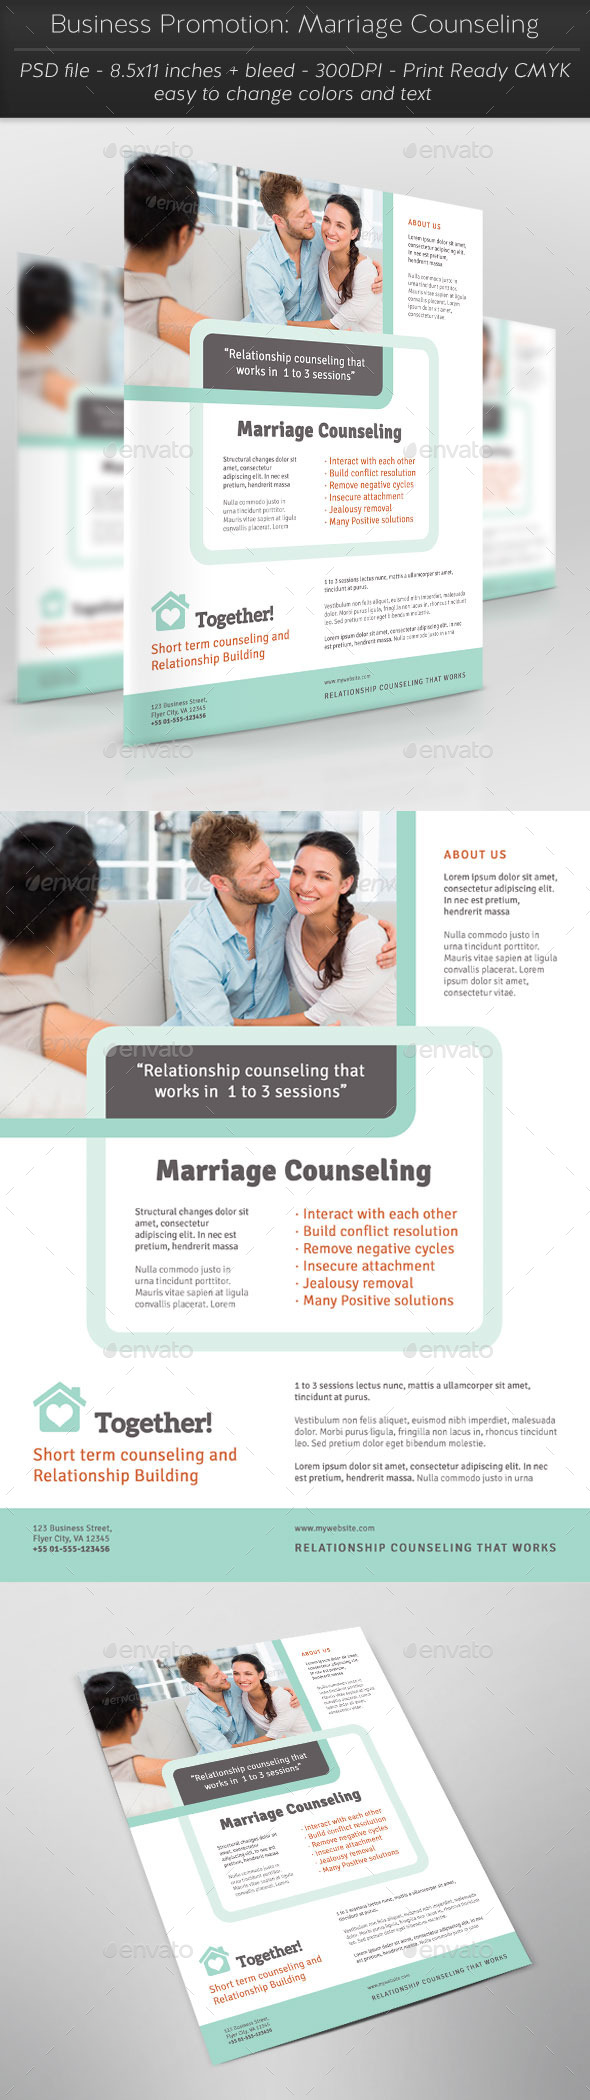 Business Promotion Marriage Counseling